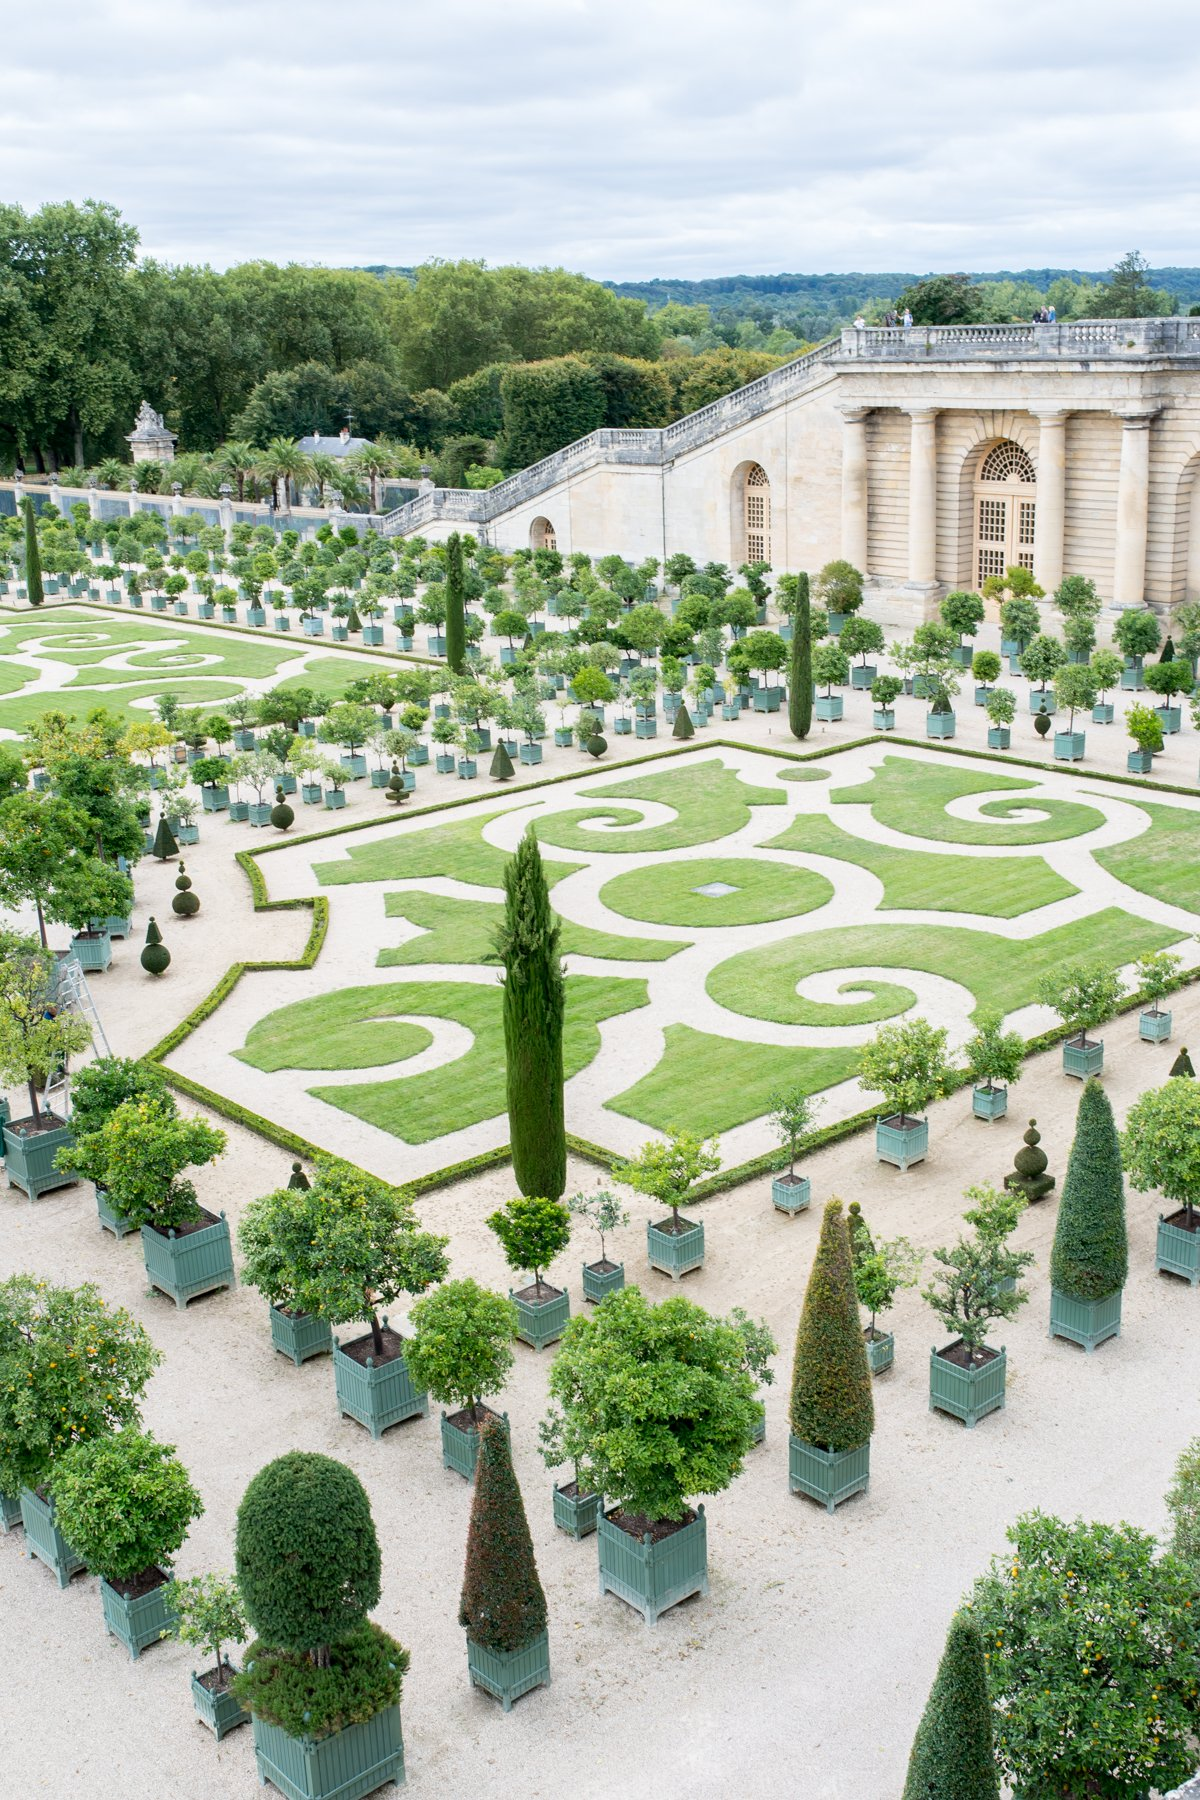 Stacie Flinner How to Visit Versailles Paris-1.jpg